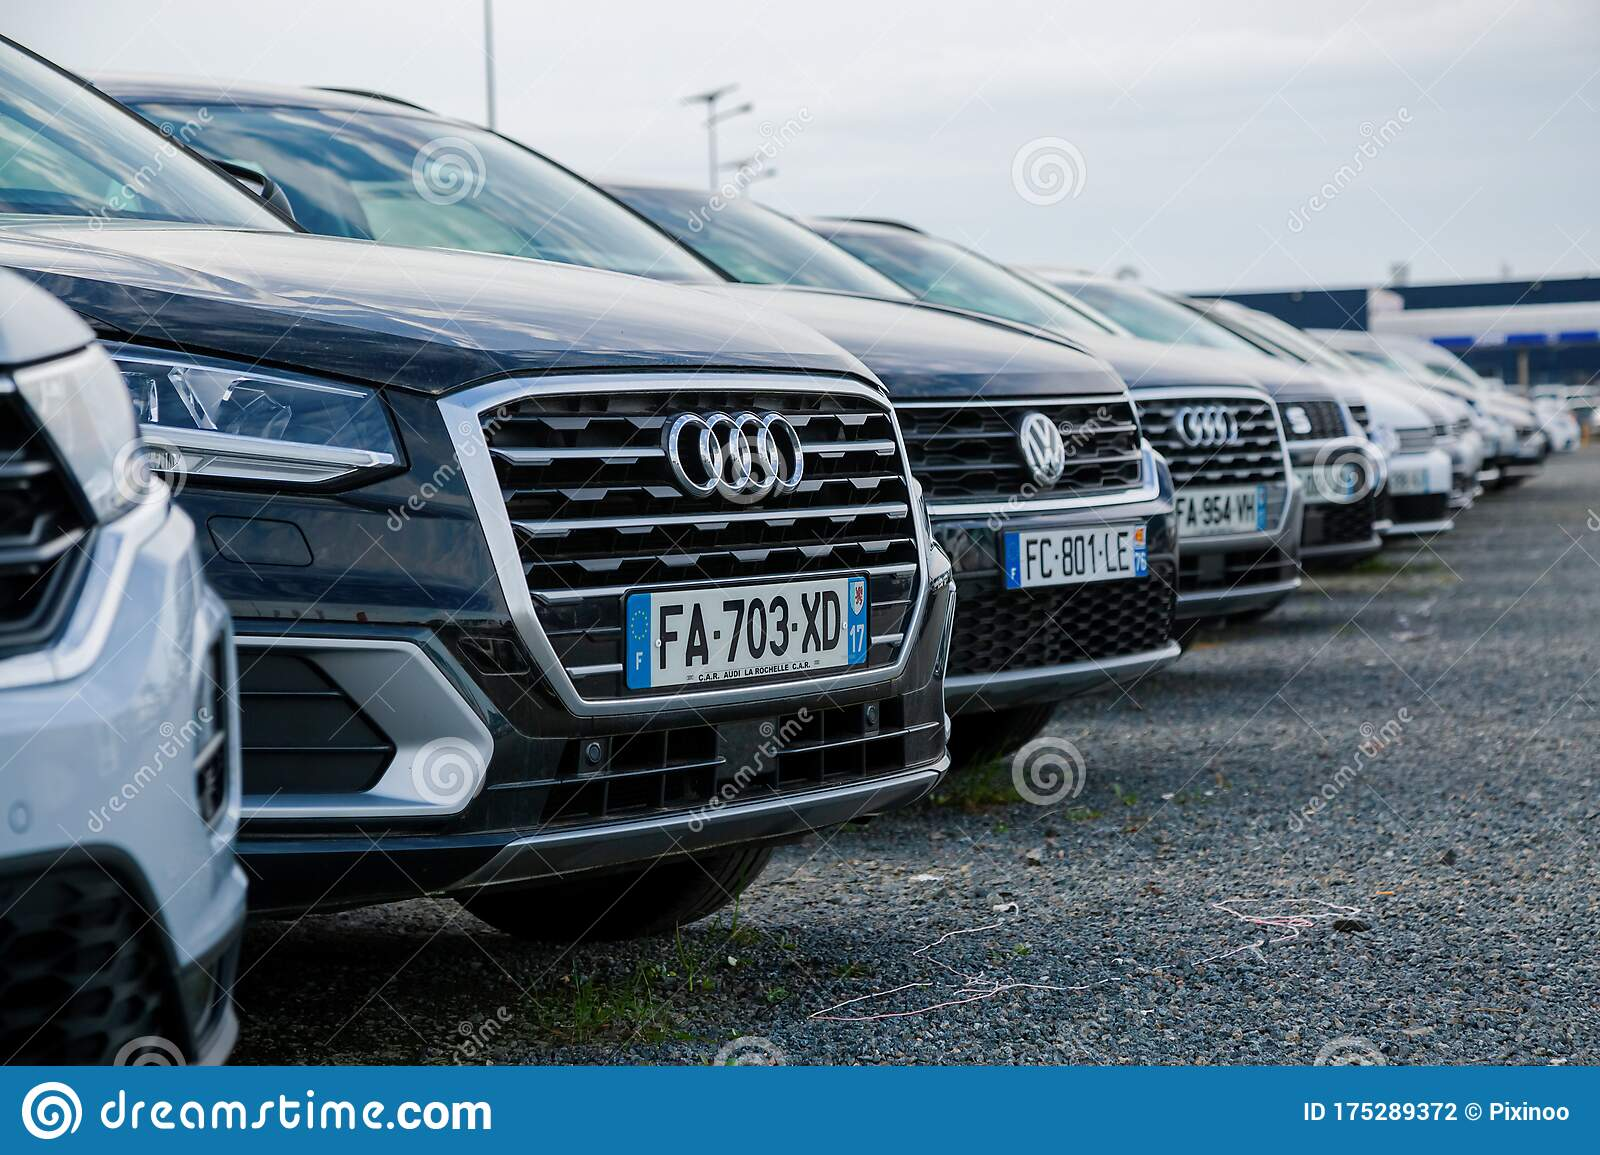 Luxury Second Hand Cars For Sale On The Network Of The German Audi Volkswagen Dealer Editorial Photography Image Of Economy International 175289372